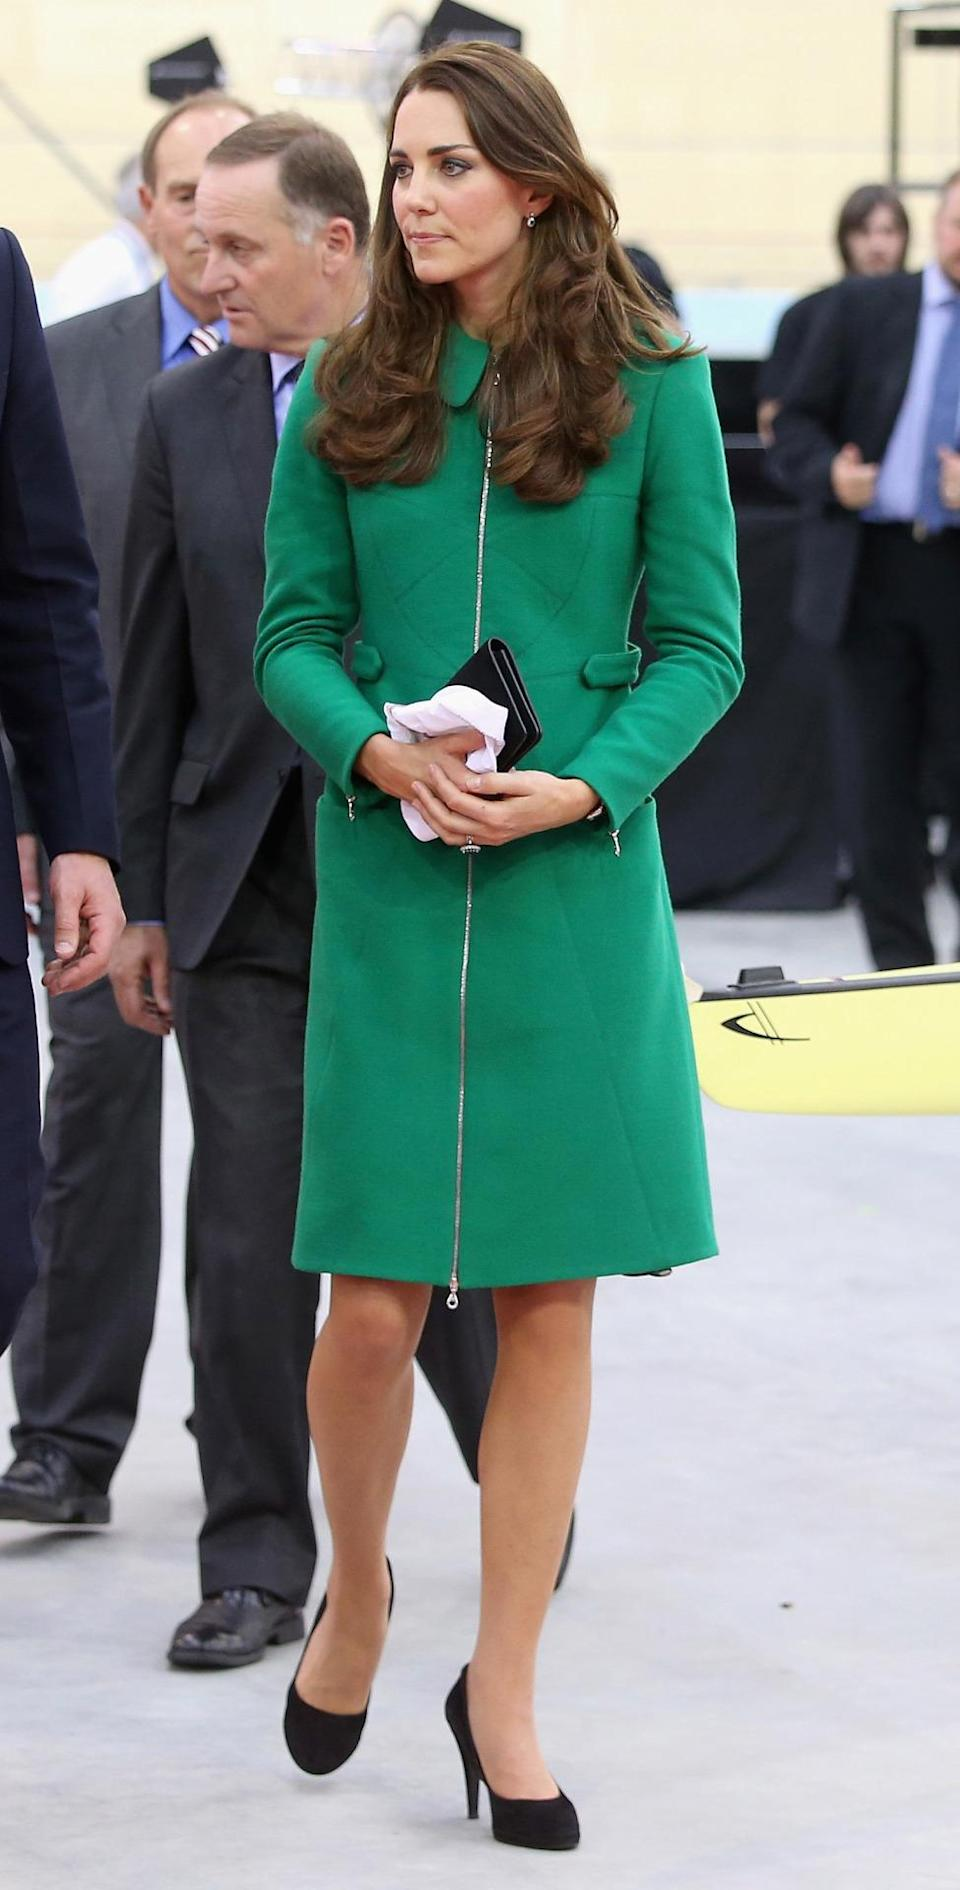 <p>Another day in New Zealand saw Kate in a green Erdem coat. She teamed the look with Episode heels and her trusty black Mulberry clutch.</p><p><i>[Photo: PA]</i></p>